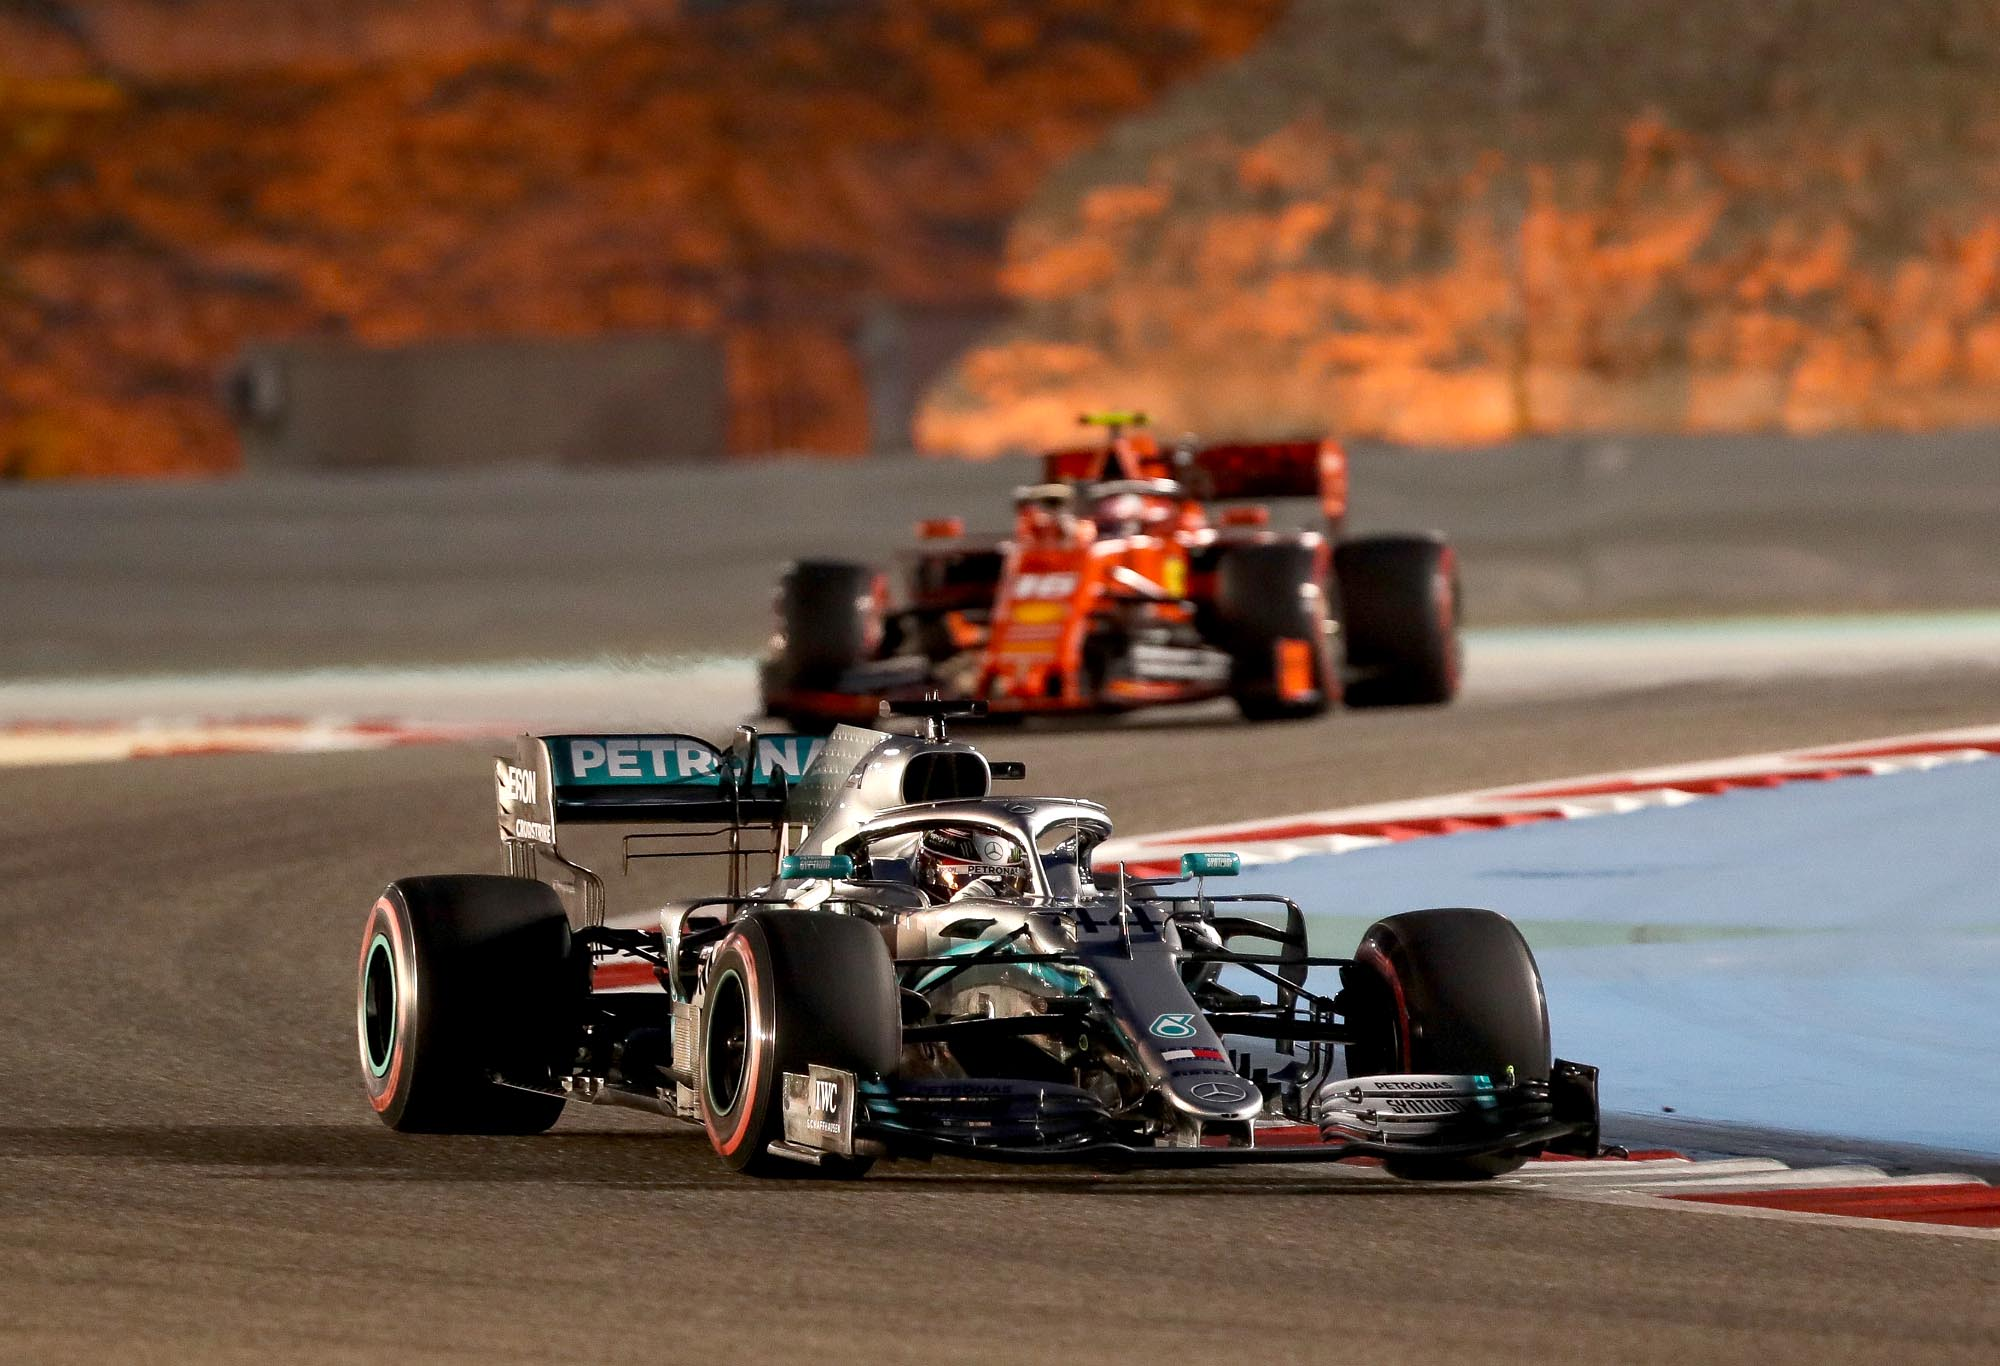 Lewis Hamilton leads Charles Leclerc on track at the 2019 Bahrain Grand Prix.